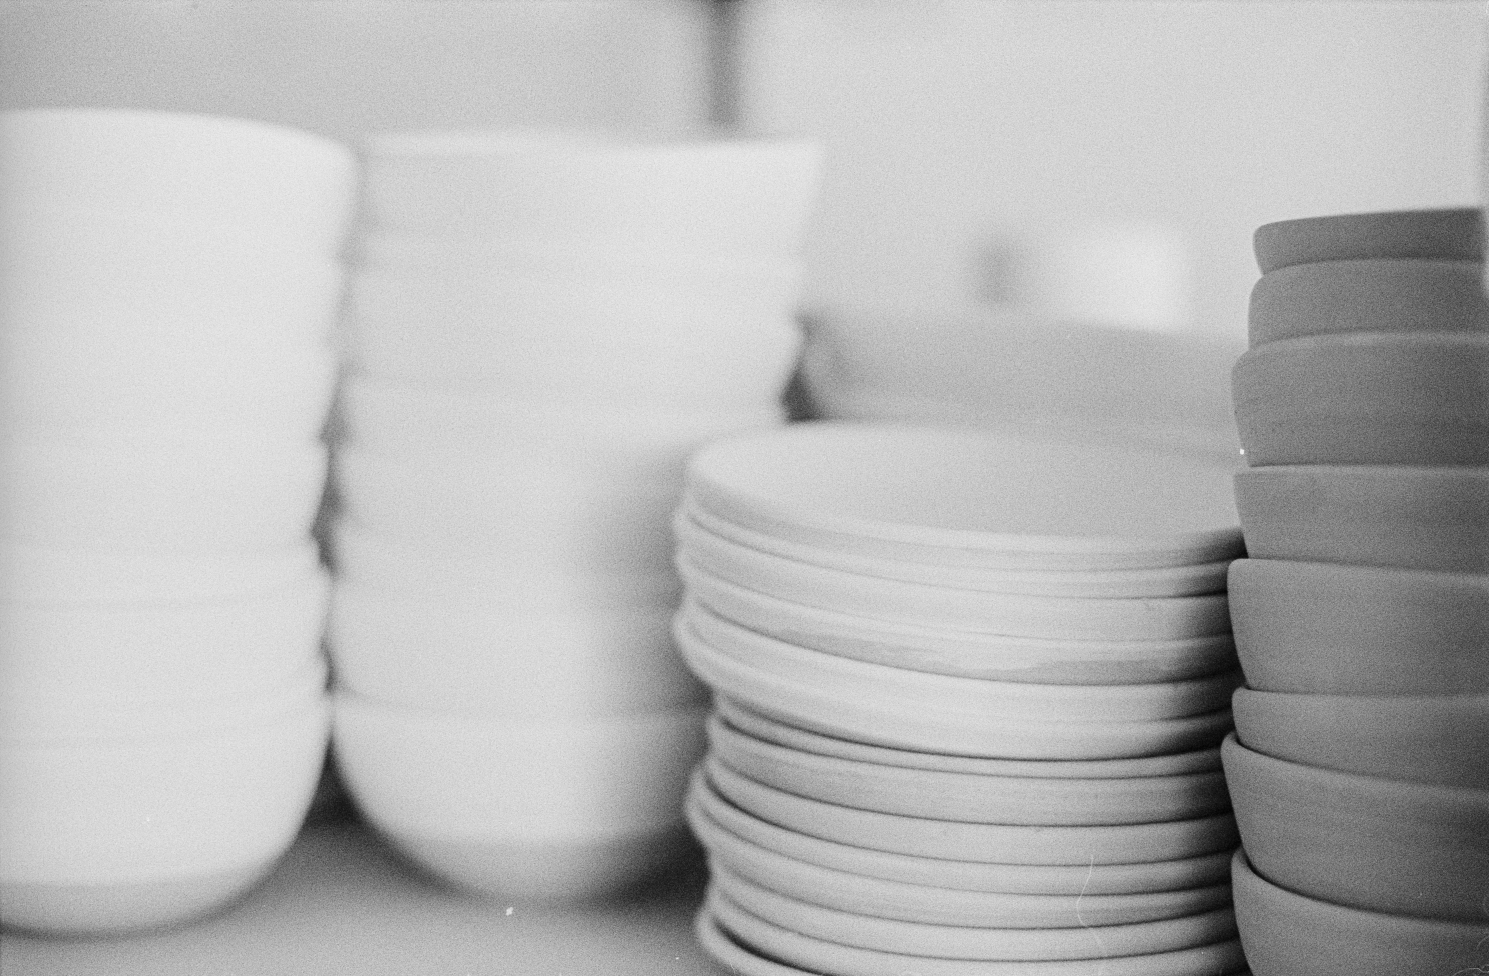 Bowls and Plates ready for the kiln